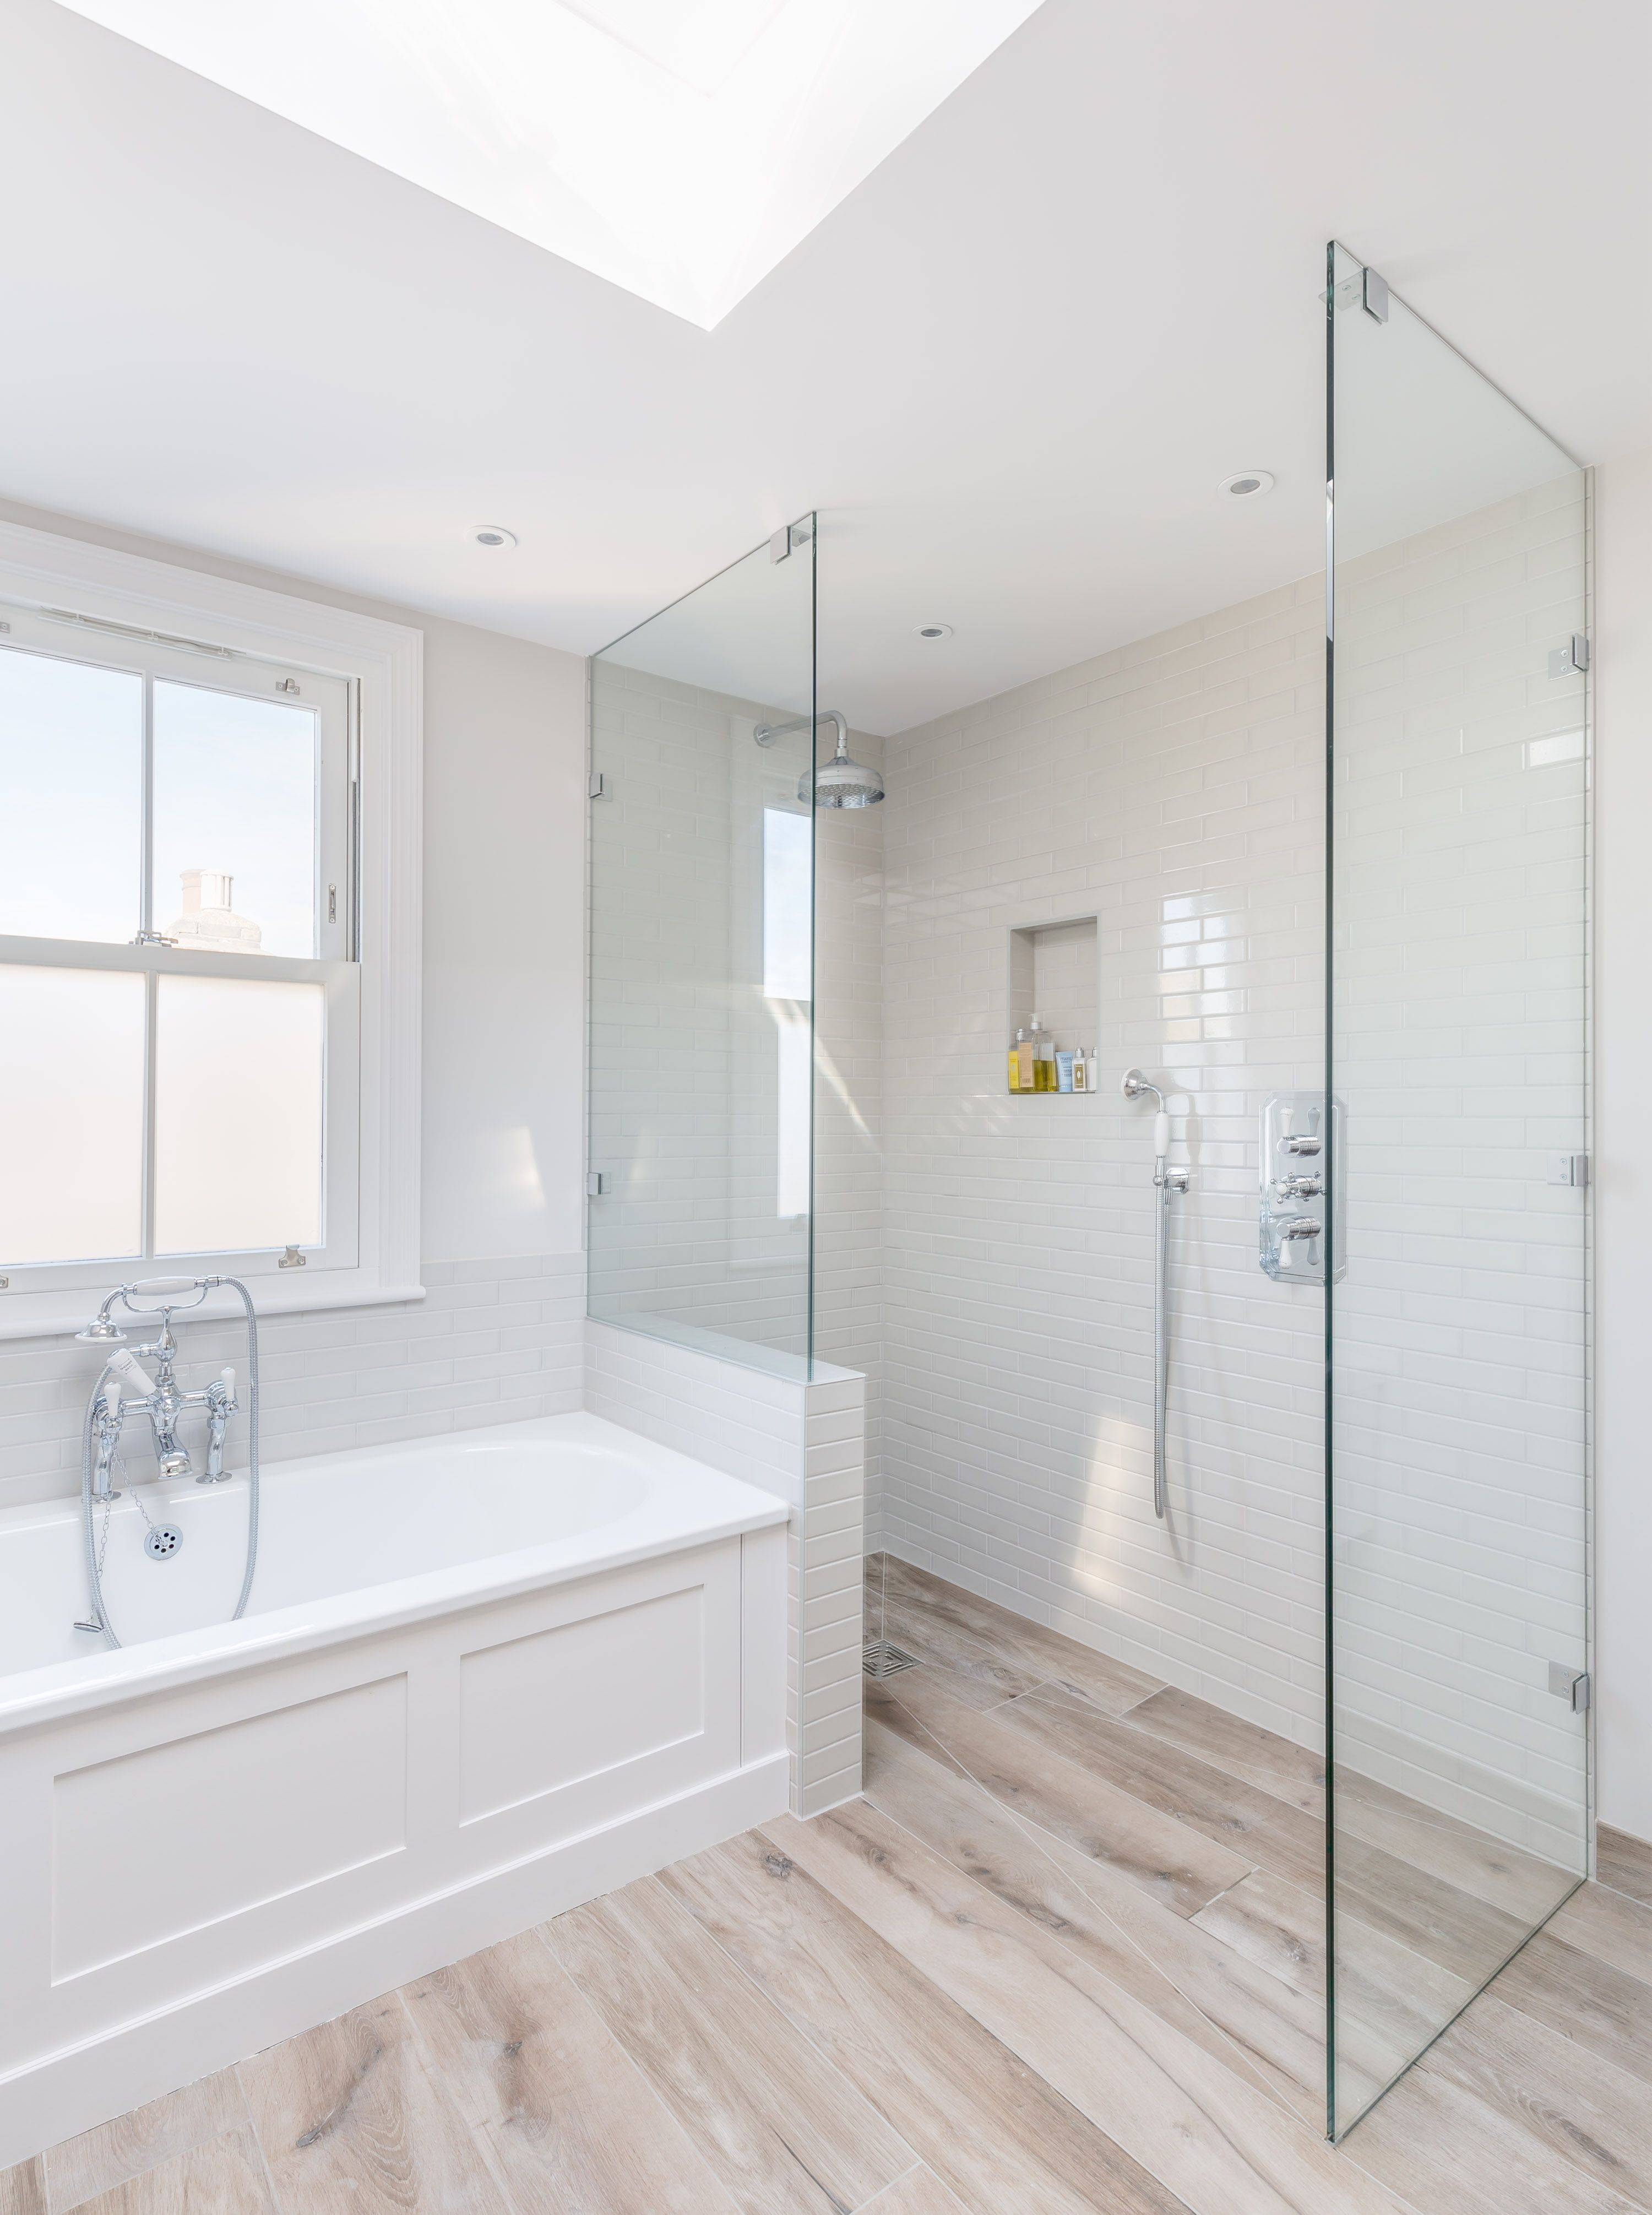 Victorian Property Renovation Walk In Shower Glass